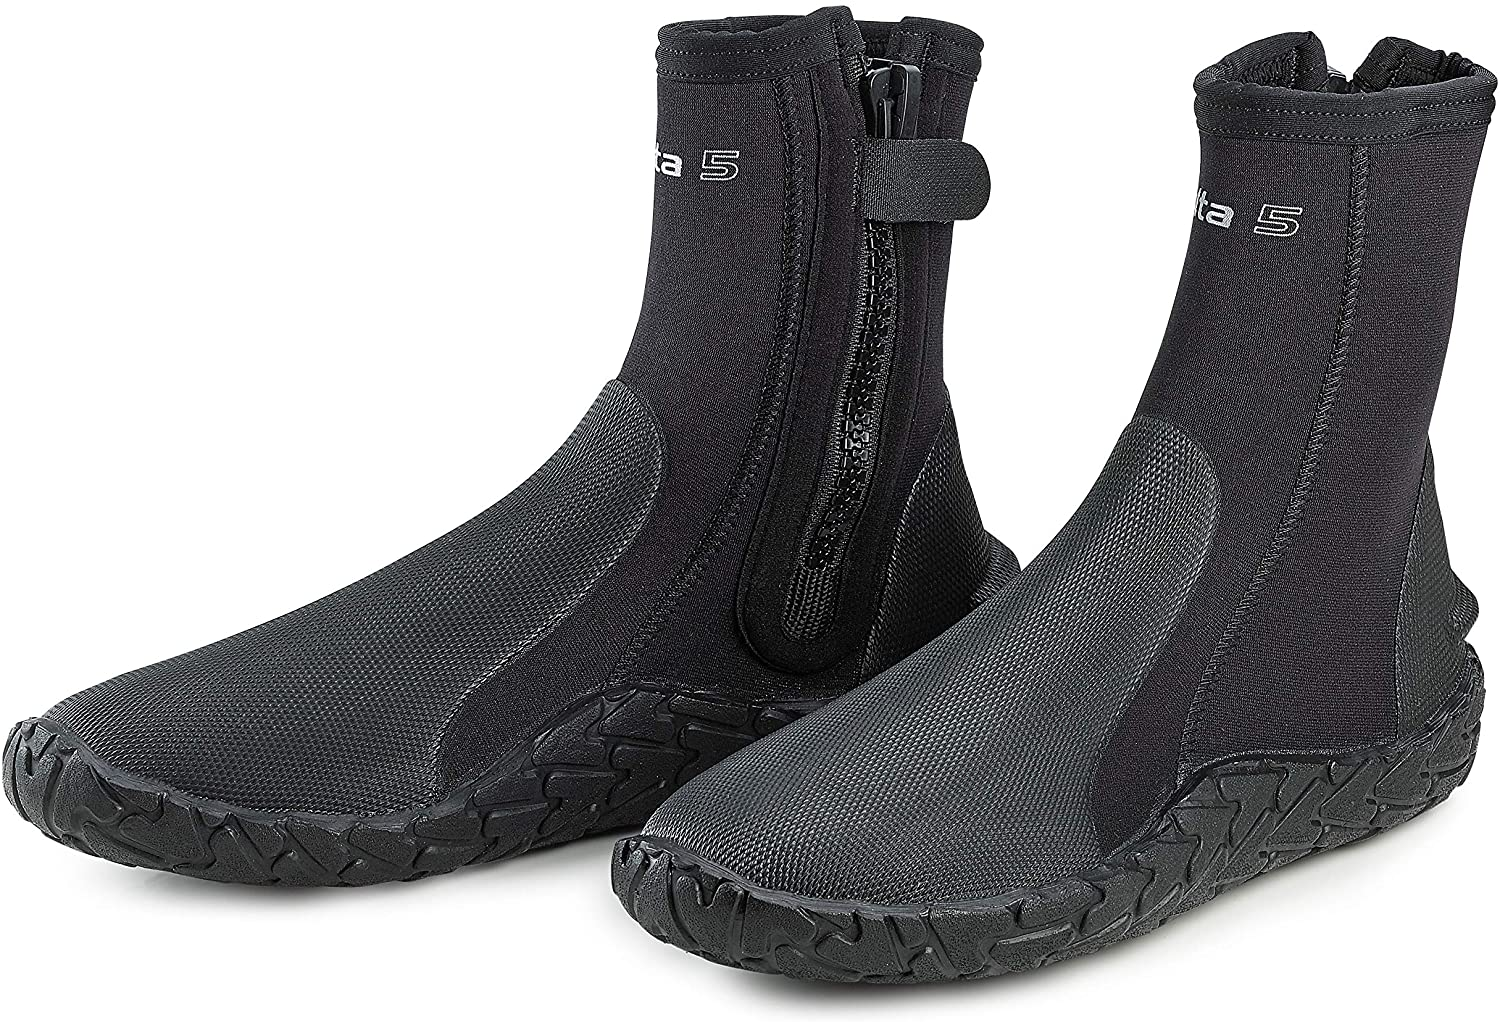 Scubapro Super San Diego Mall beauty product restock quality top Unisex 5mm Delta Boots